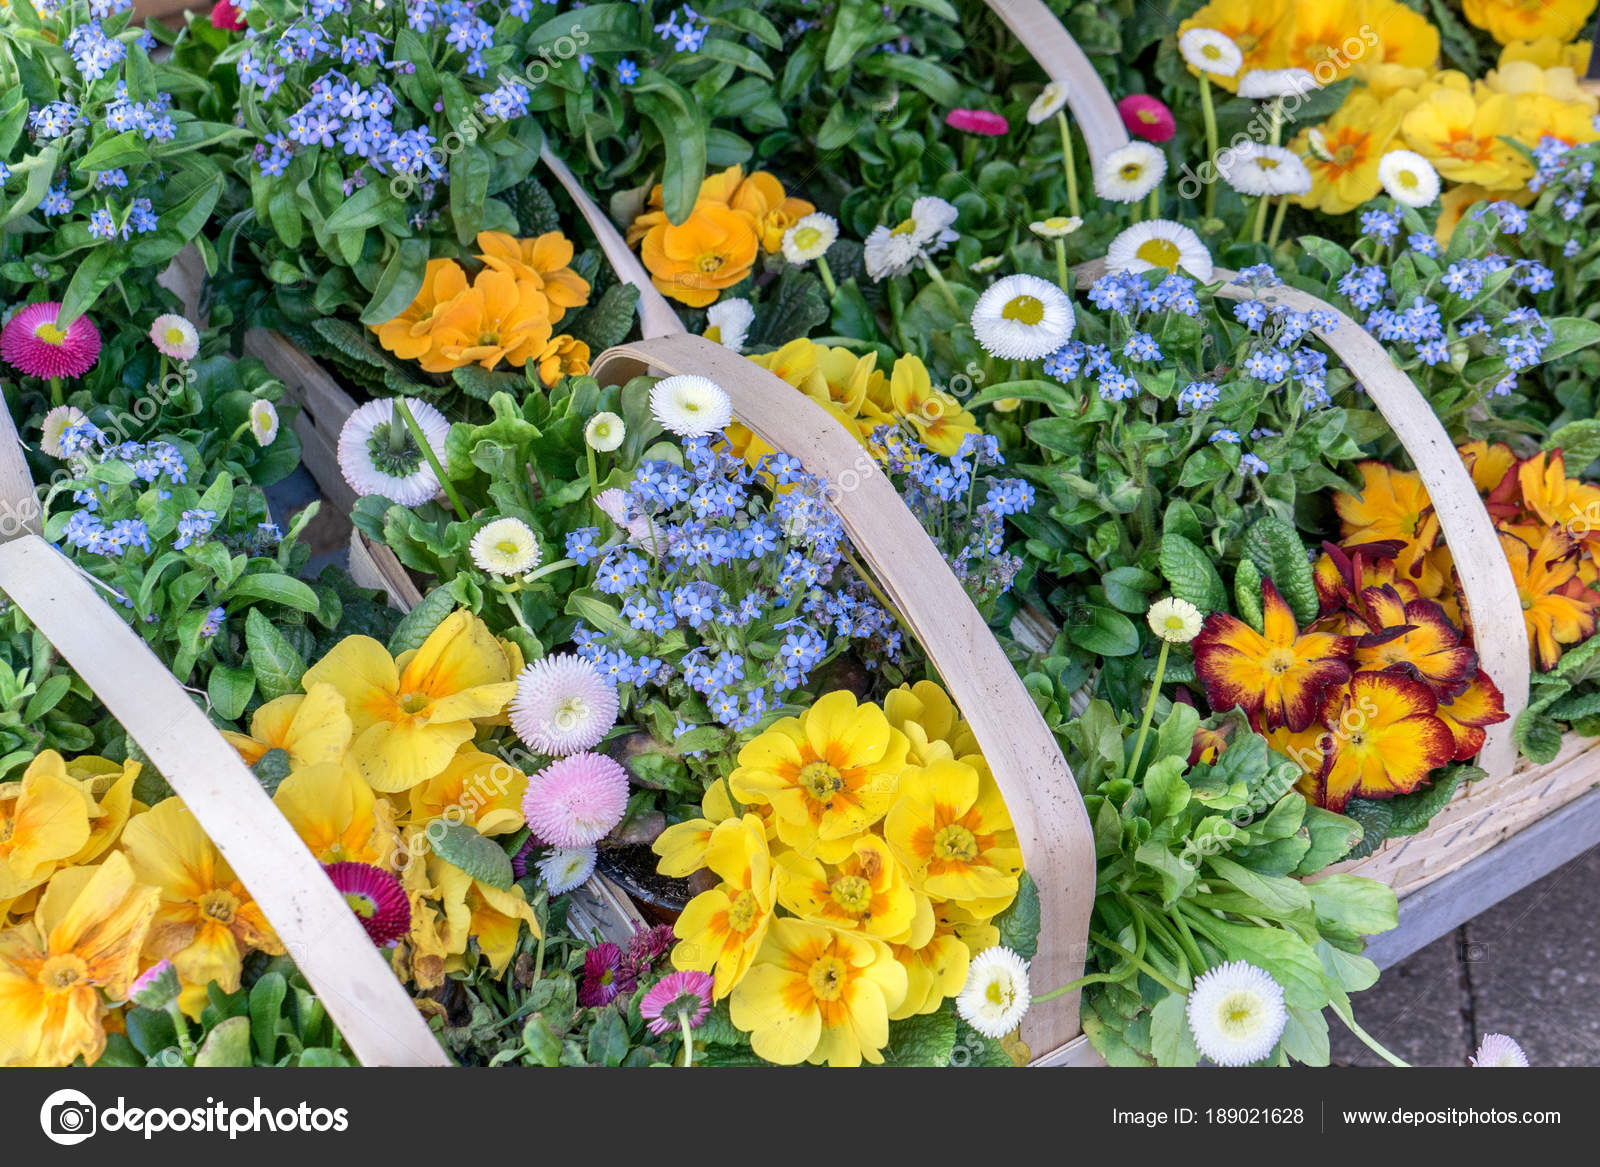 Colorful spring flowers baskets colorful primroses daisies forget colorful spring flowers baskets with colorful primroses daisies and forget me nots photo by coramueller mightylinksfo